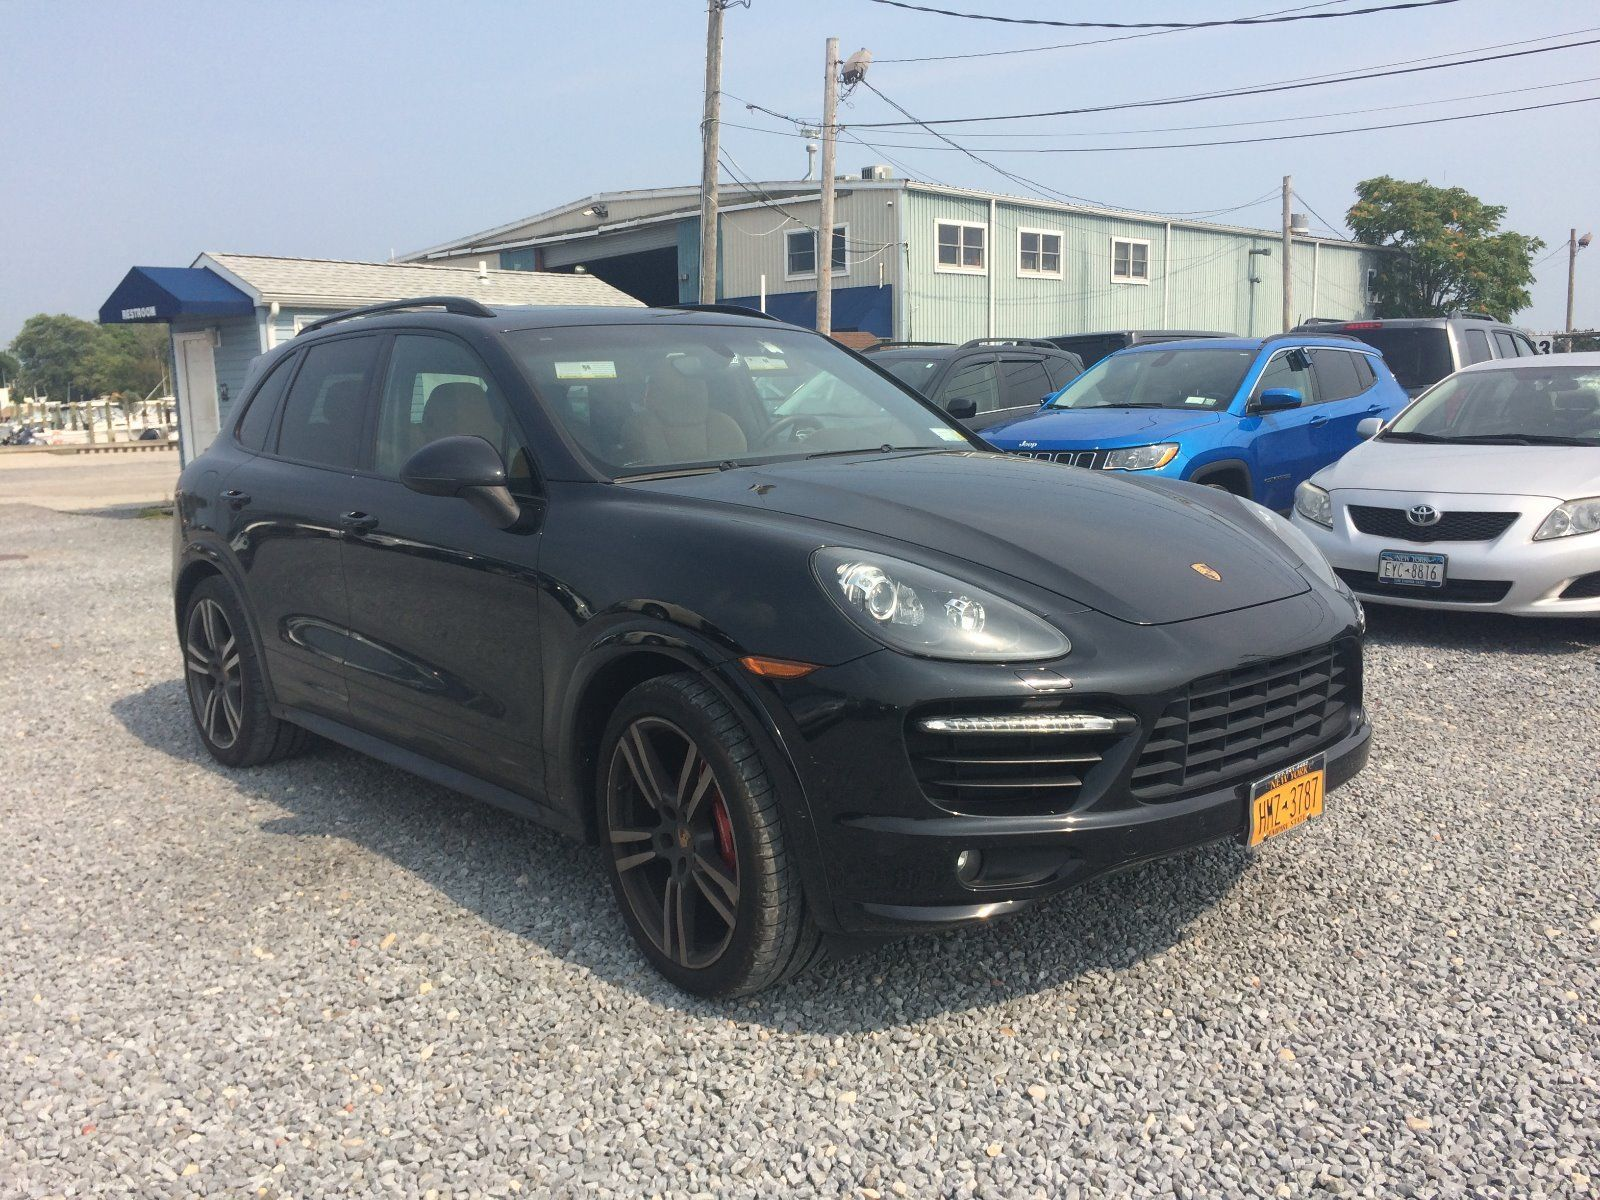 2013 Porsche Cayenne Gts 2013 Porsche Cayenne Gts Black 2018 2019 Is In Stock And For Sale 24carshop Com